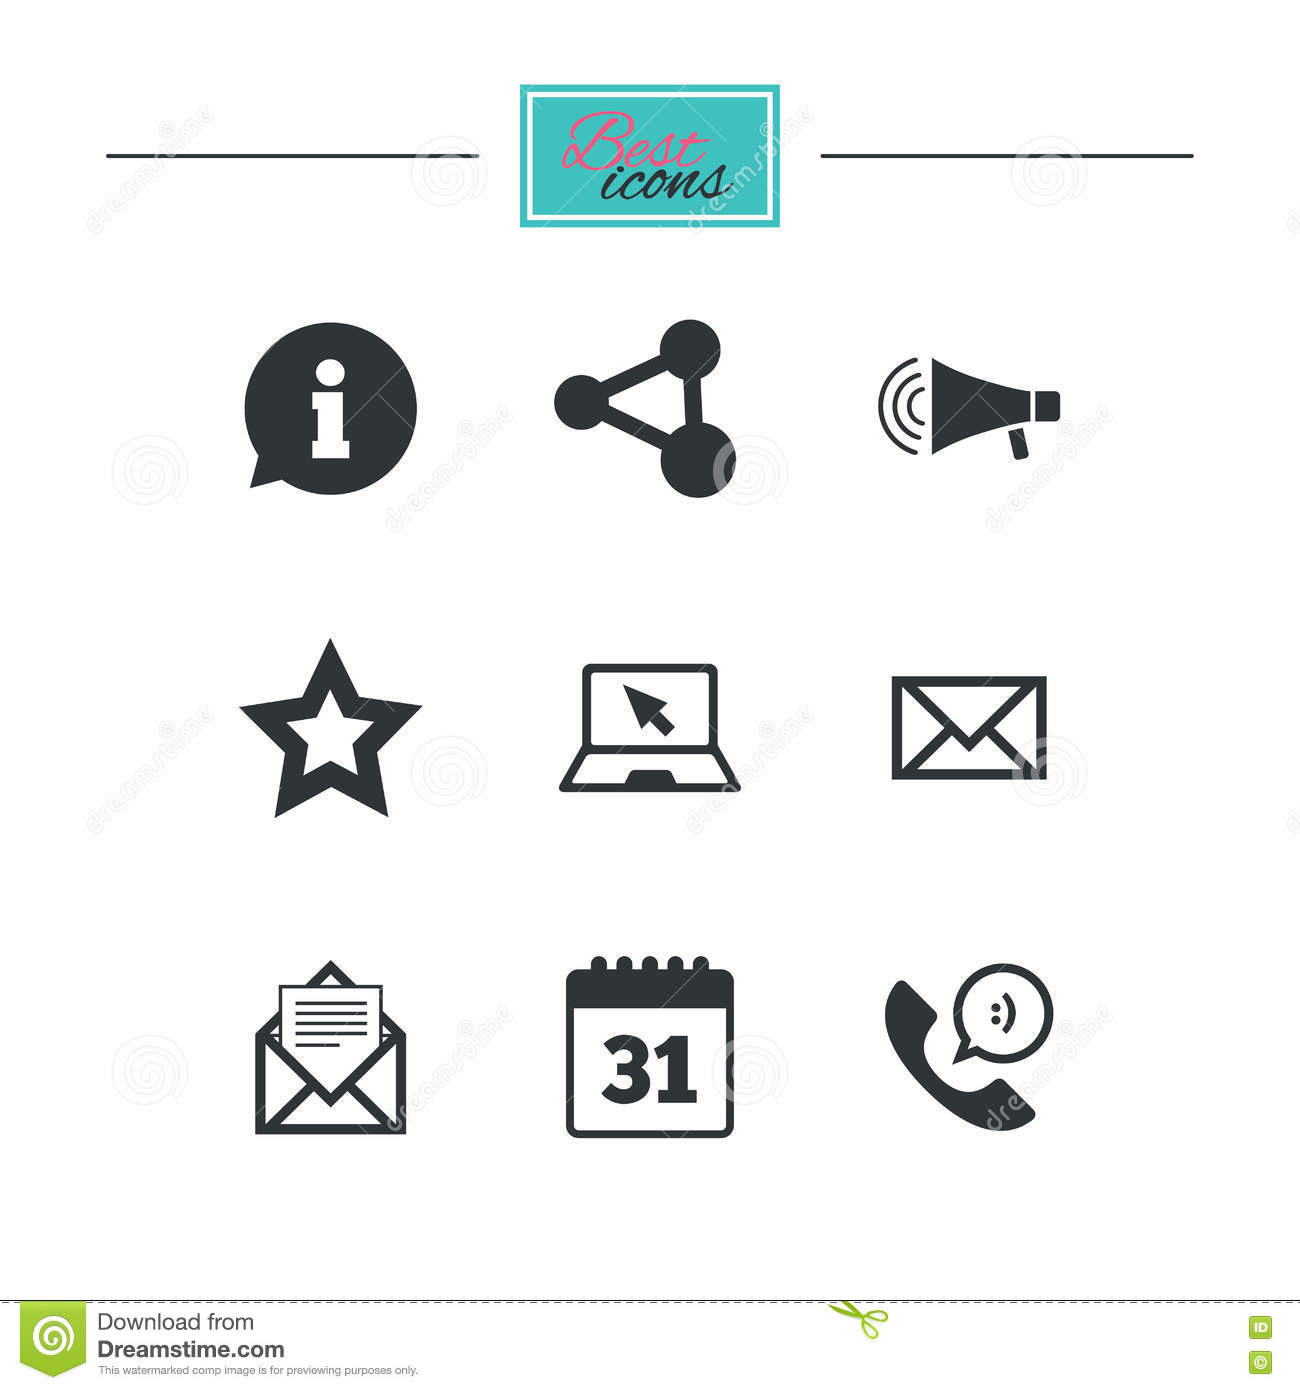 An overview of images symbols and signs communication